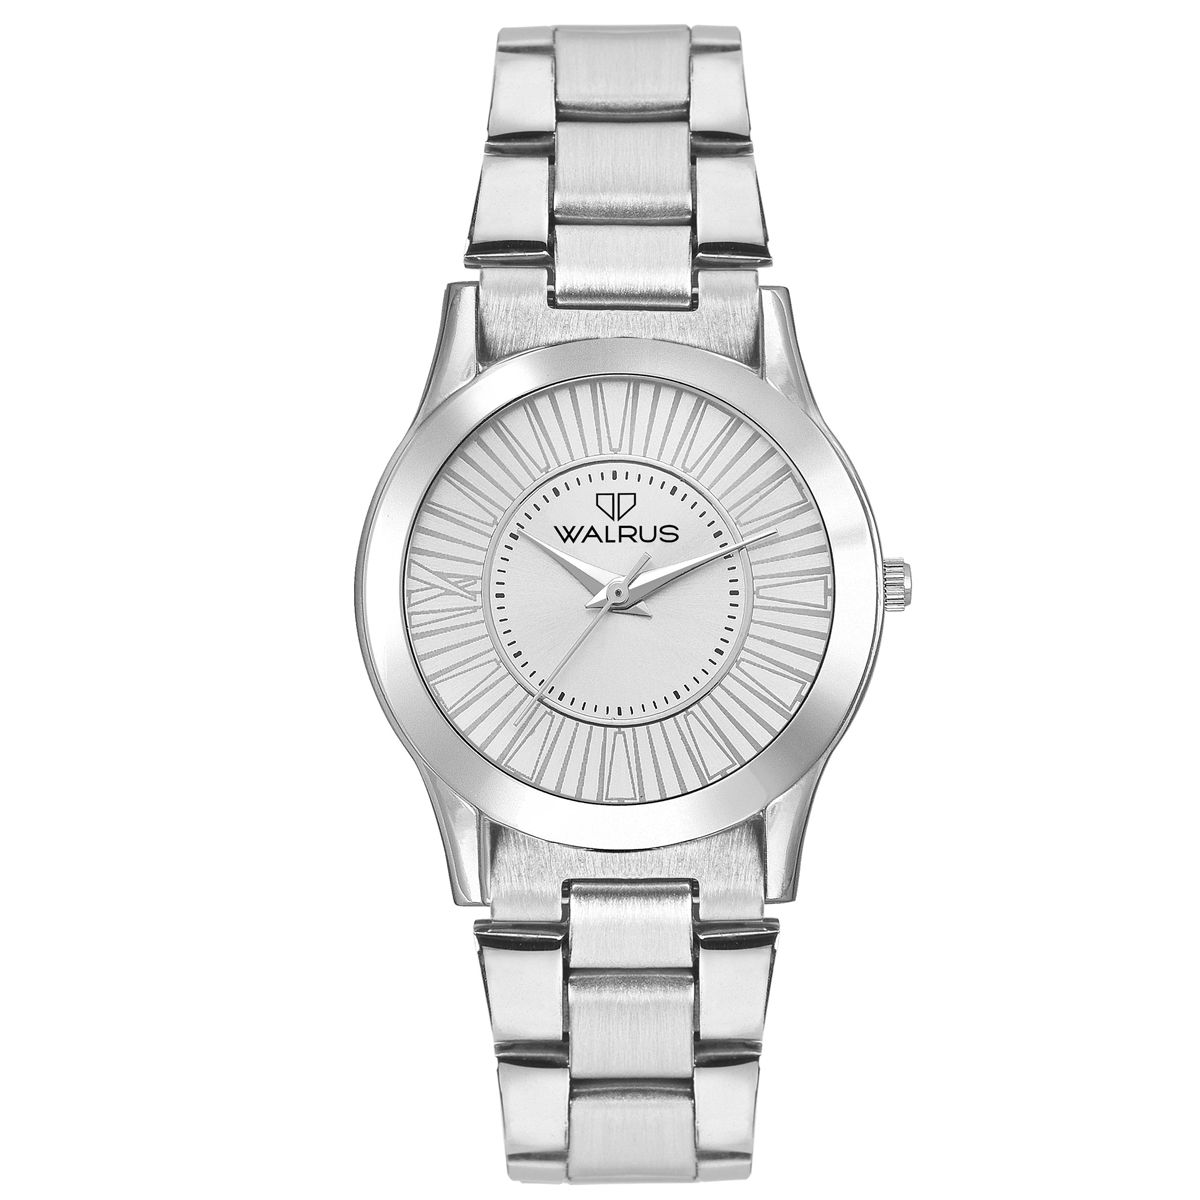 Walrus Ova Silver Color Analog Women Watch -WWW-OVA-070707